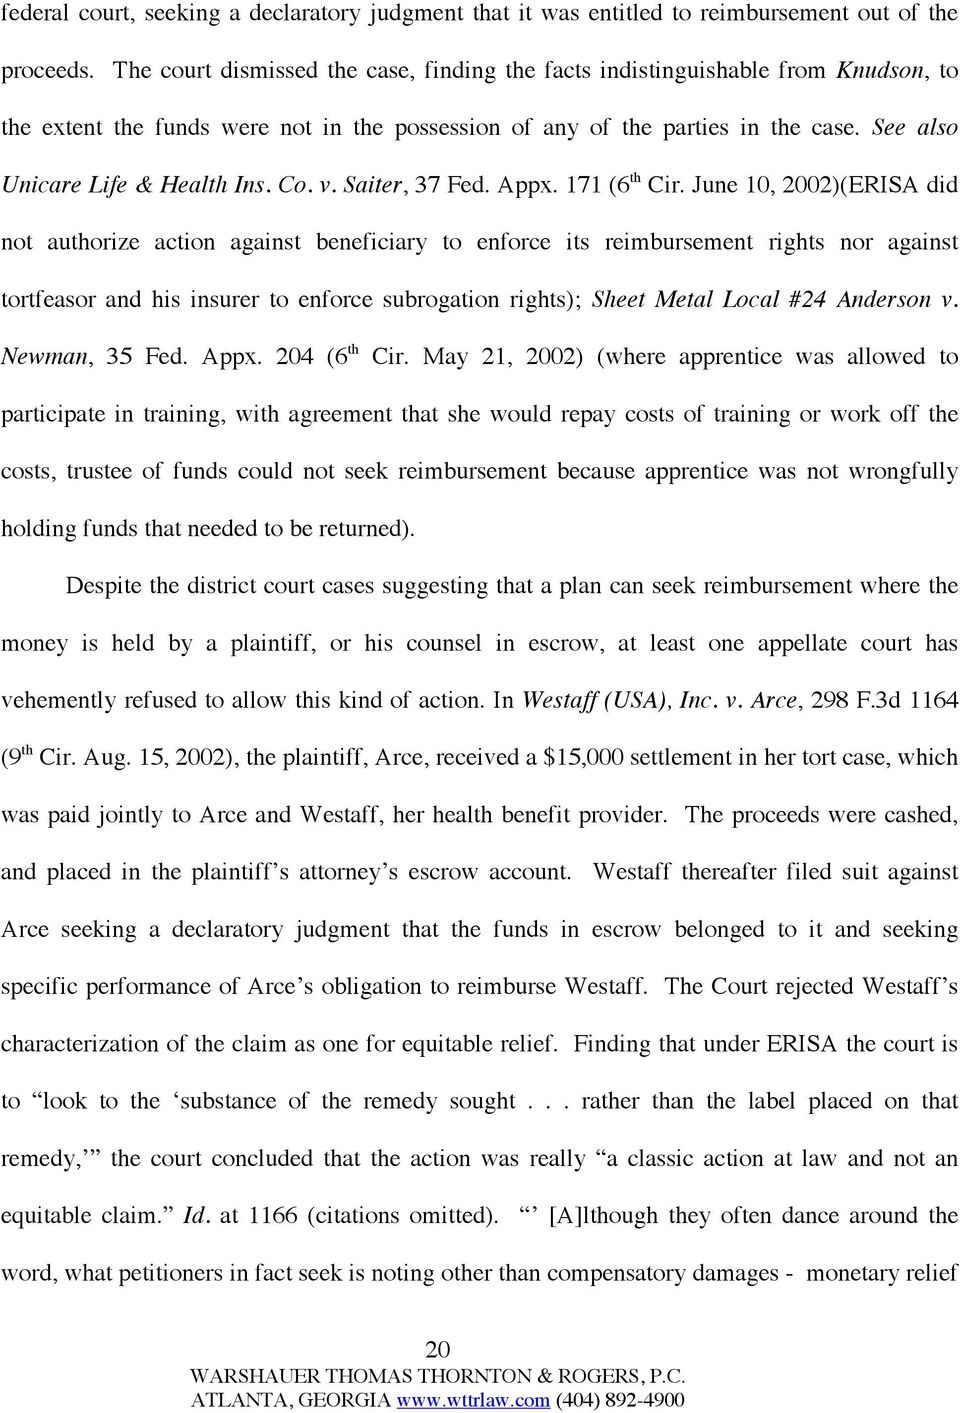 See also Unicare Life & Health Ins. Co. v. Saiter, 37 Fed. Appx. 171 (6 th Cir.